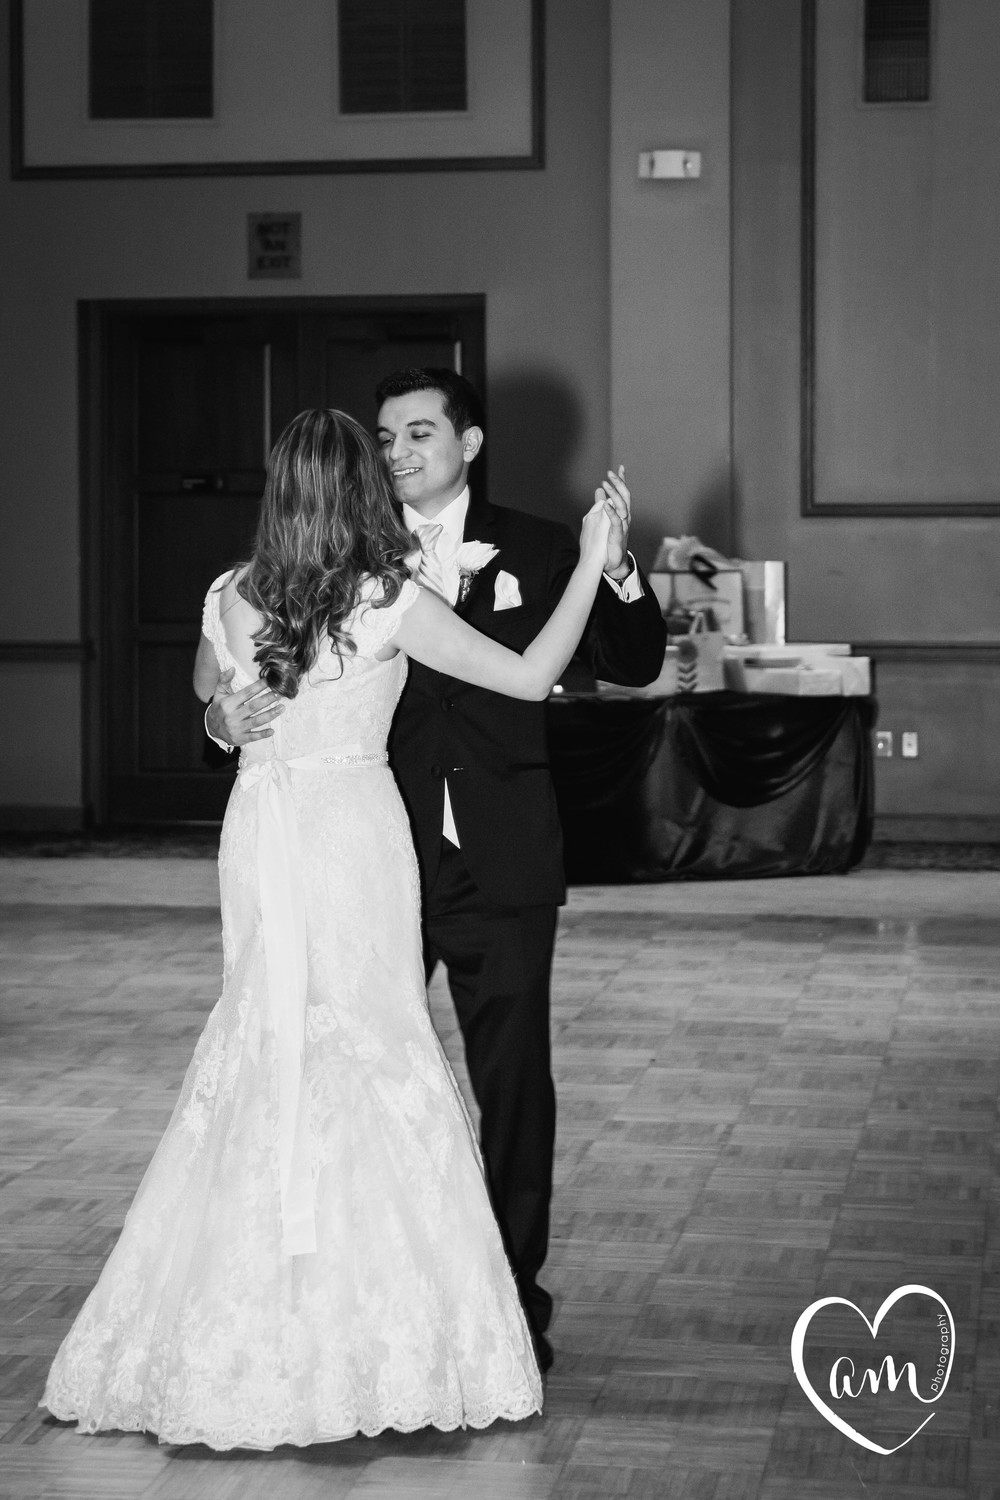 Bride and Groom's first dance at Florida wedding. Photo by Amanda Mejias Photography: Destination Wedding Photographer.